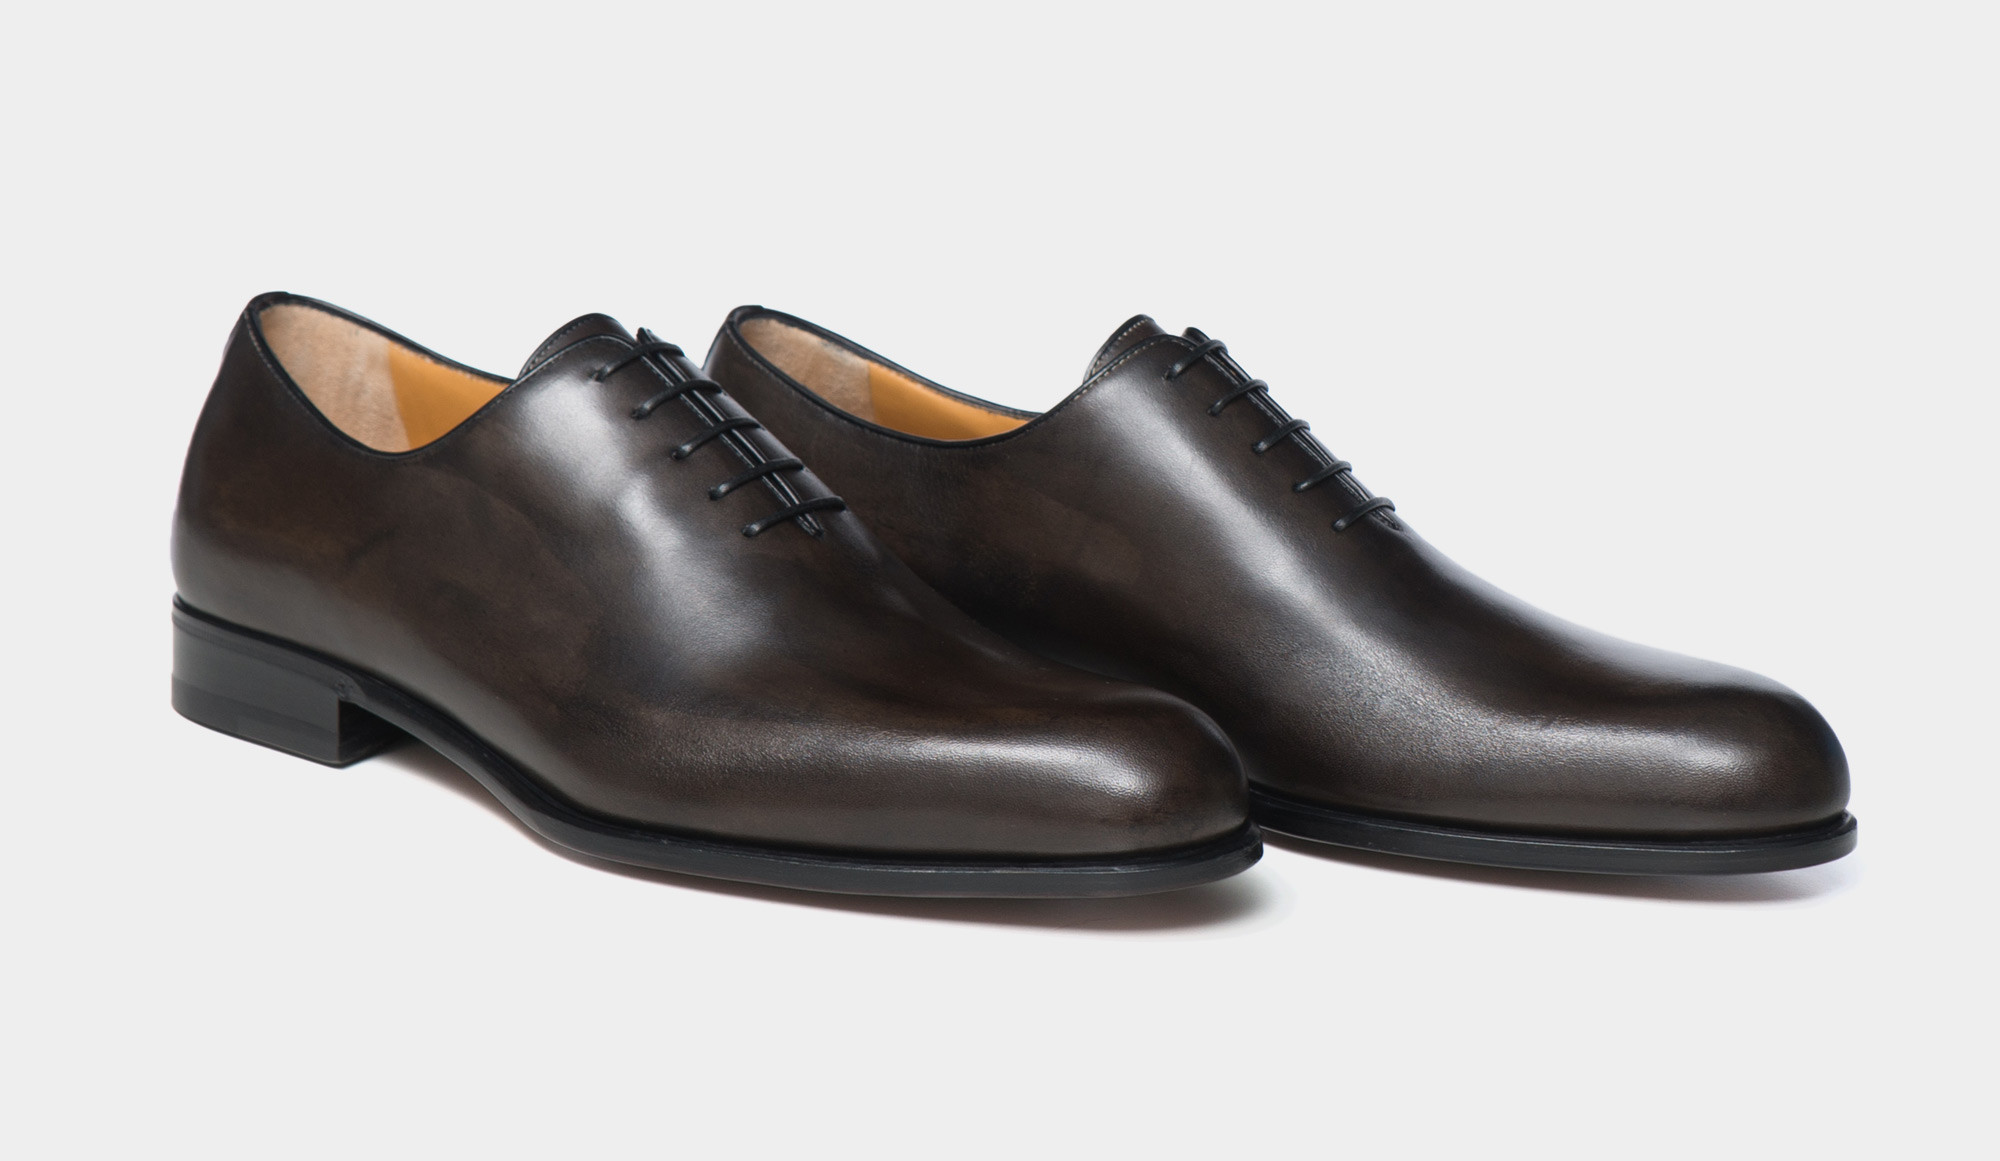 Image result for TESTONI SHOES